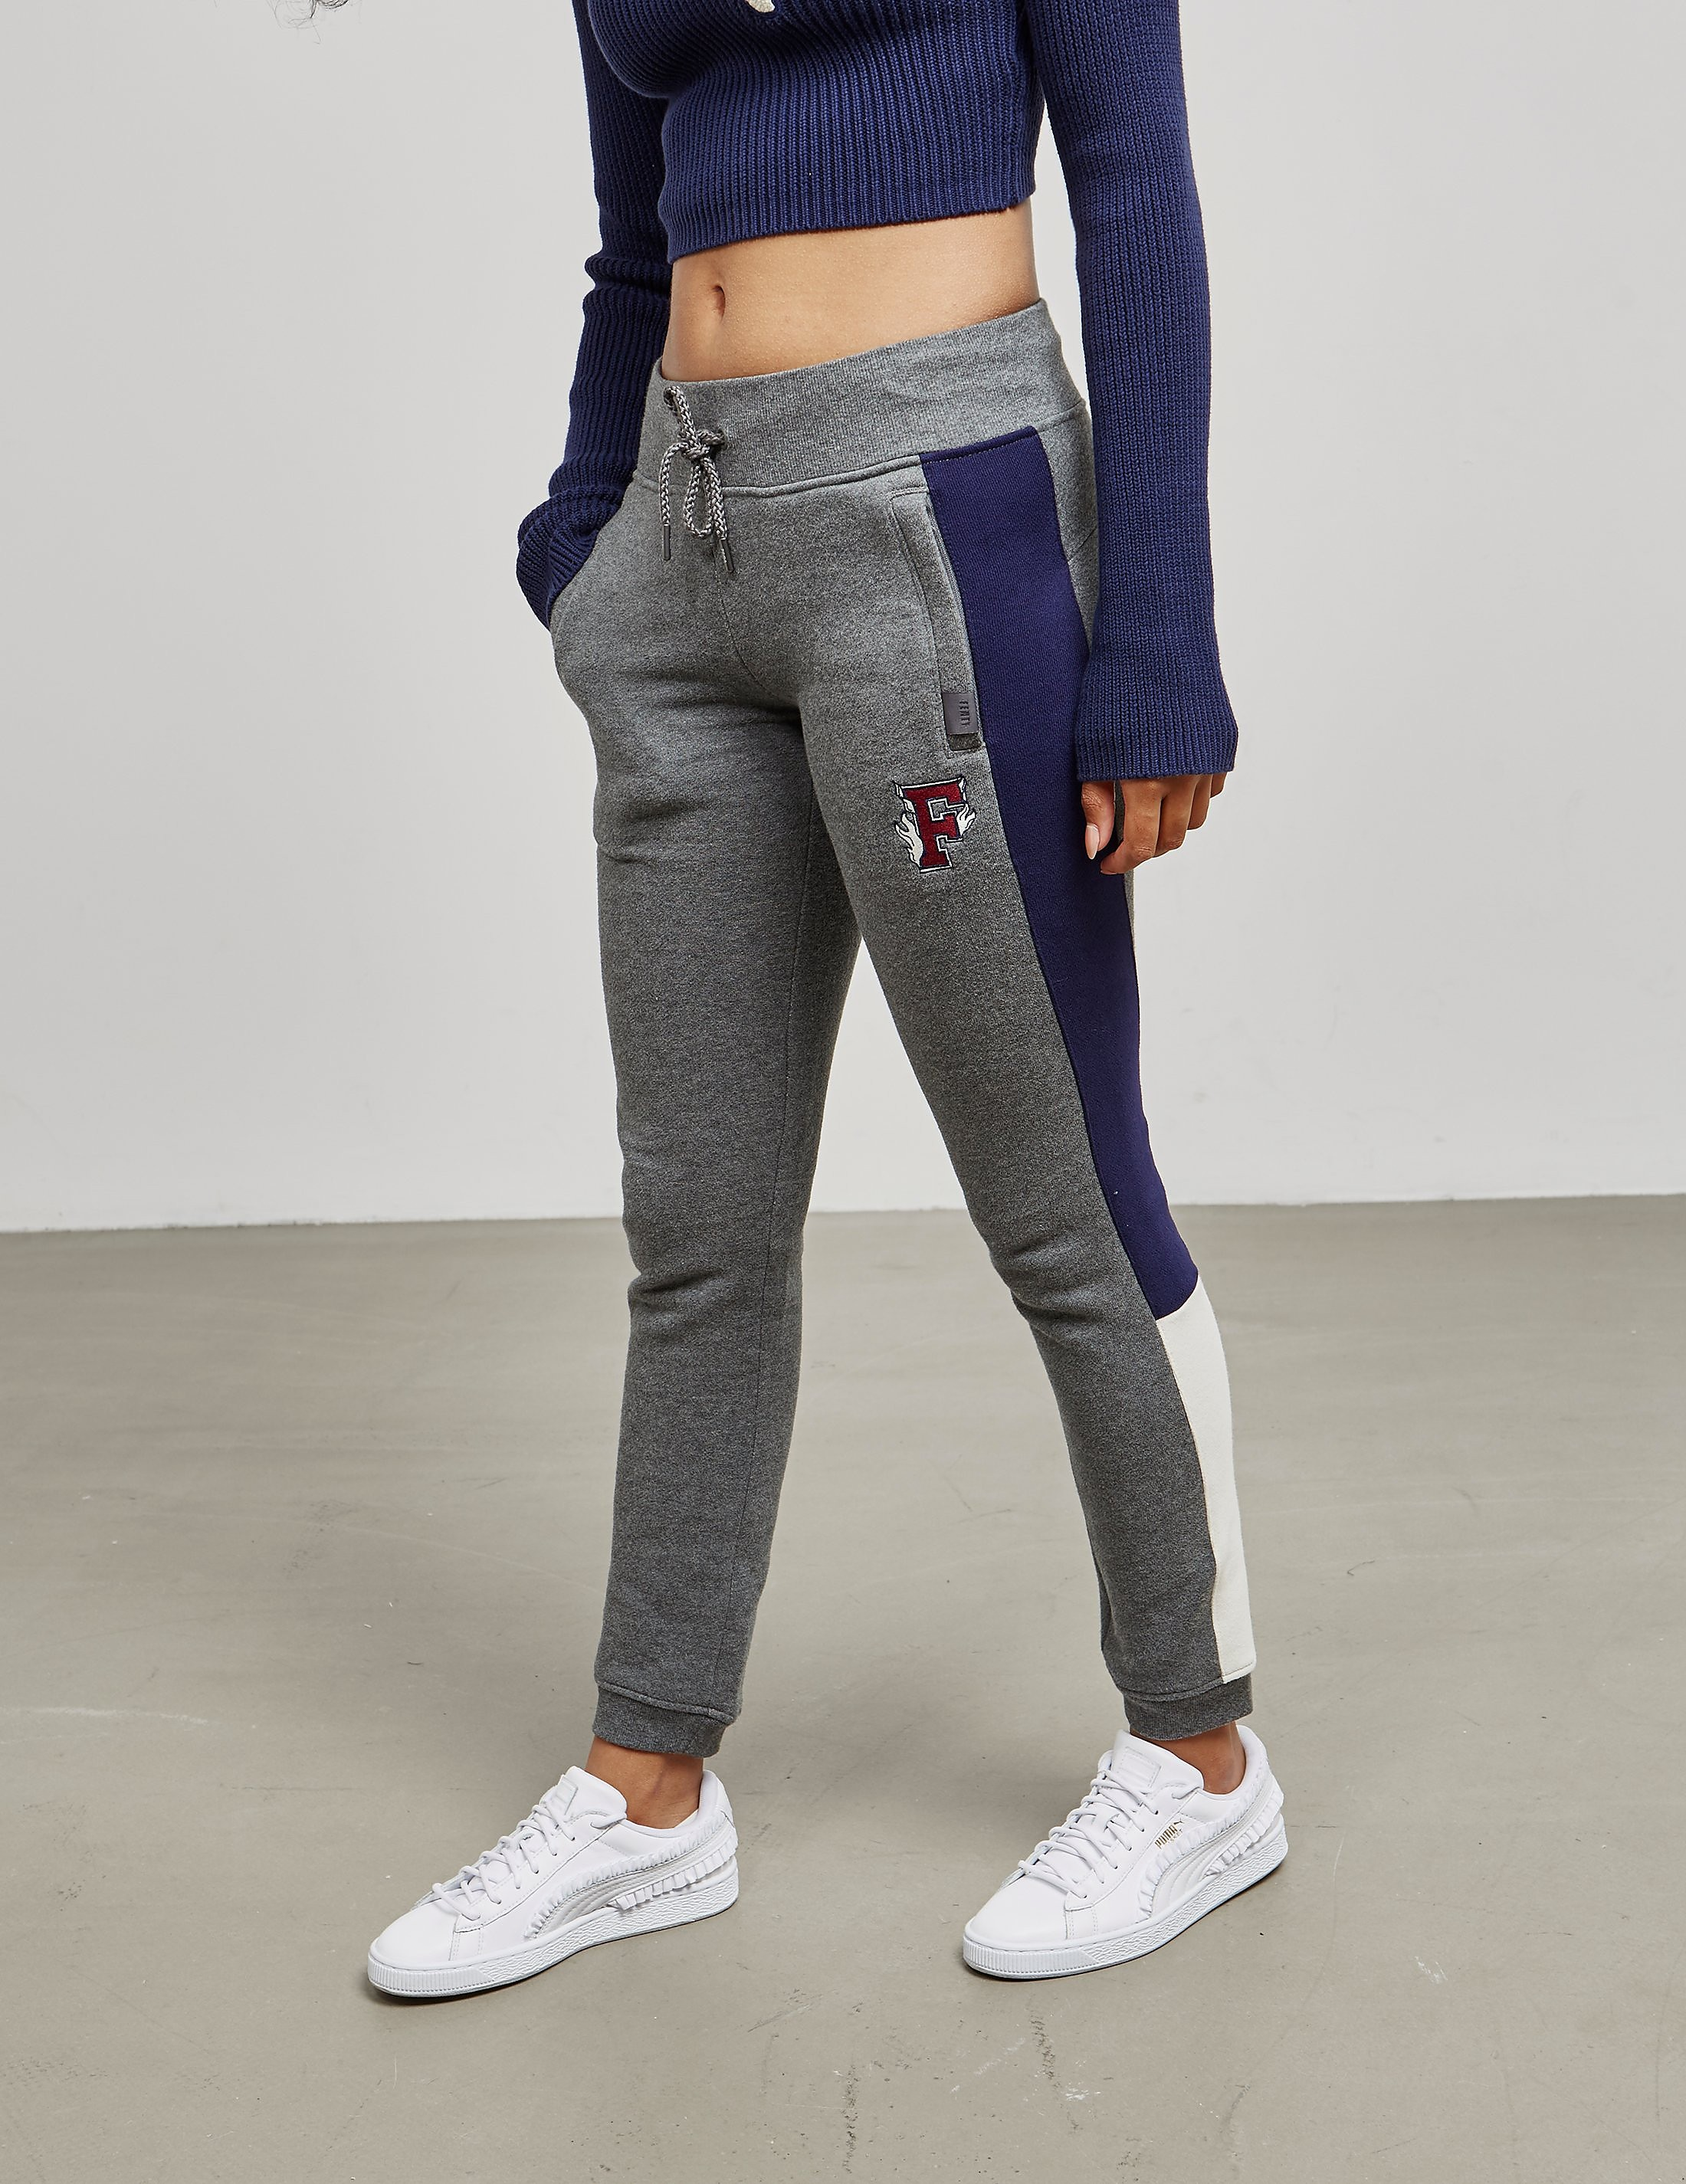 PUMA x Fenty Panel Sweatpants